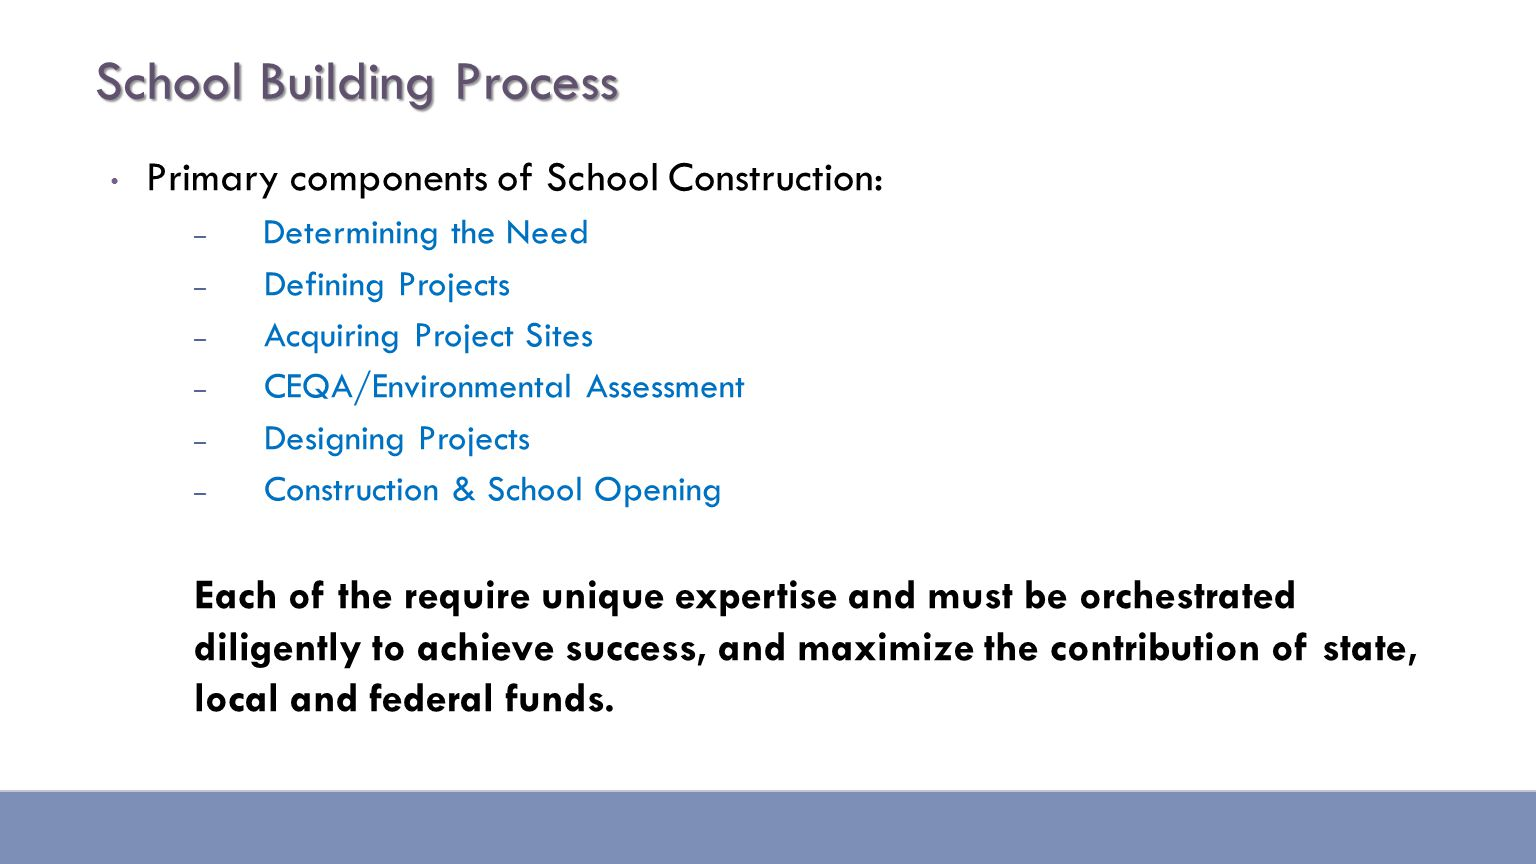 School Building Process Primary components of School Construction: – Determining the Need – Defining Projects – Acquiring Project Sites – CEQA/Environmental Assessment – Designing Projects – Construction & School Opening Each of the require unique expertise and must be orchestrated diligently to achieve success, and maximize the contribution of state, local and federal funds.